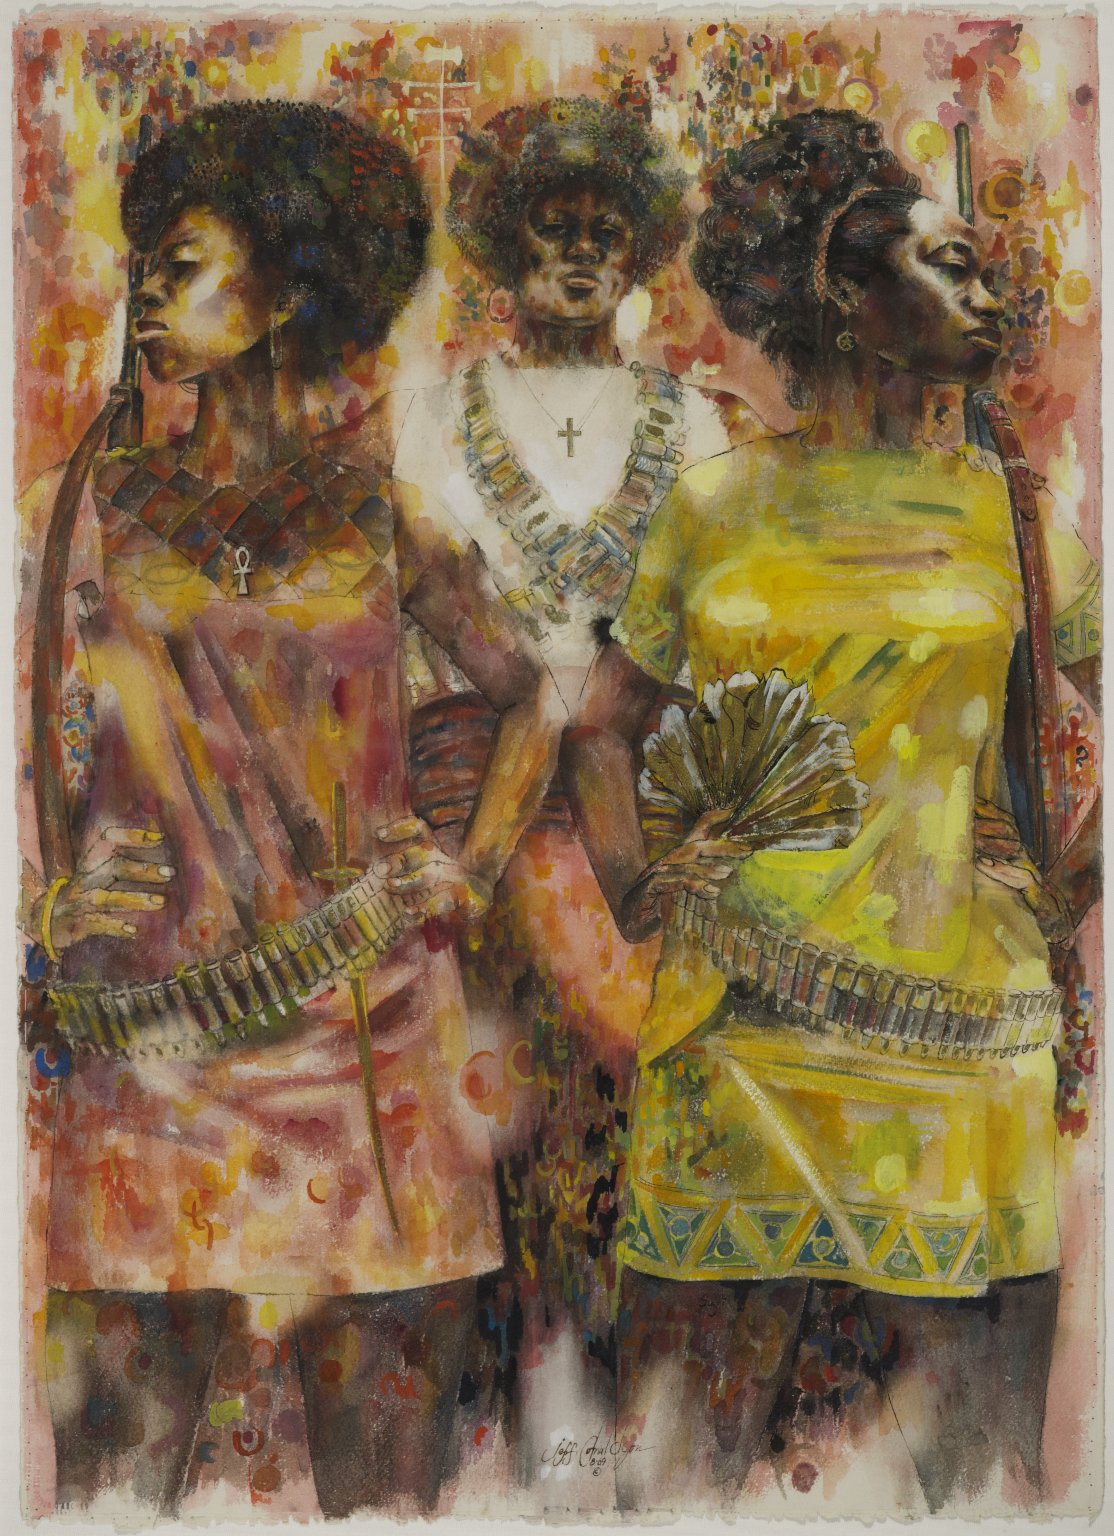 Jeff Donaldson, Wives of Shango, 1969. Brooklyn Museum, Gift of R.M. Atwater, Anna Wolfrom Dove, Alice Fiebiger, Joseph Fiebiger, Belle Campbell Harriss, and Emma L. Hyde, by exchange, Designated Purchase Fund, Mary Smith Dorward Fund, Dick S. Ramsay Fund, and Carll H. de Silver Fund © the artist. Photo: Brooklyn Museum